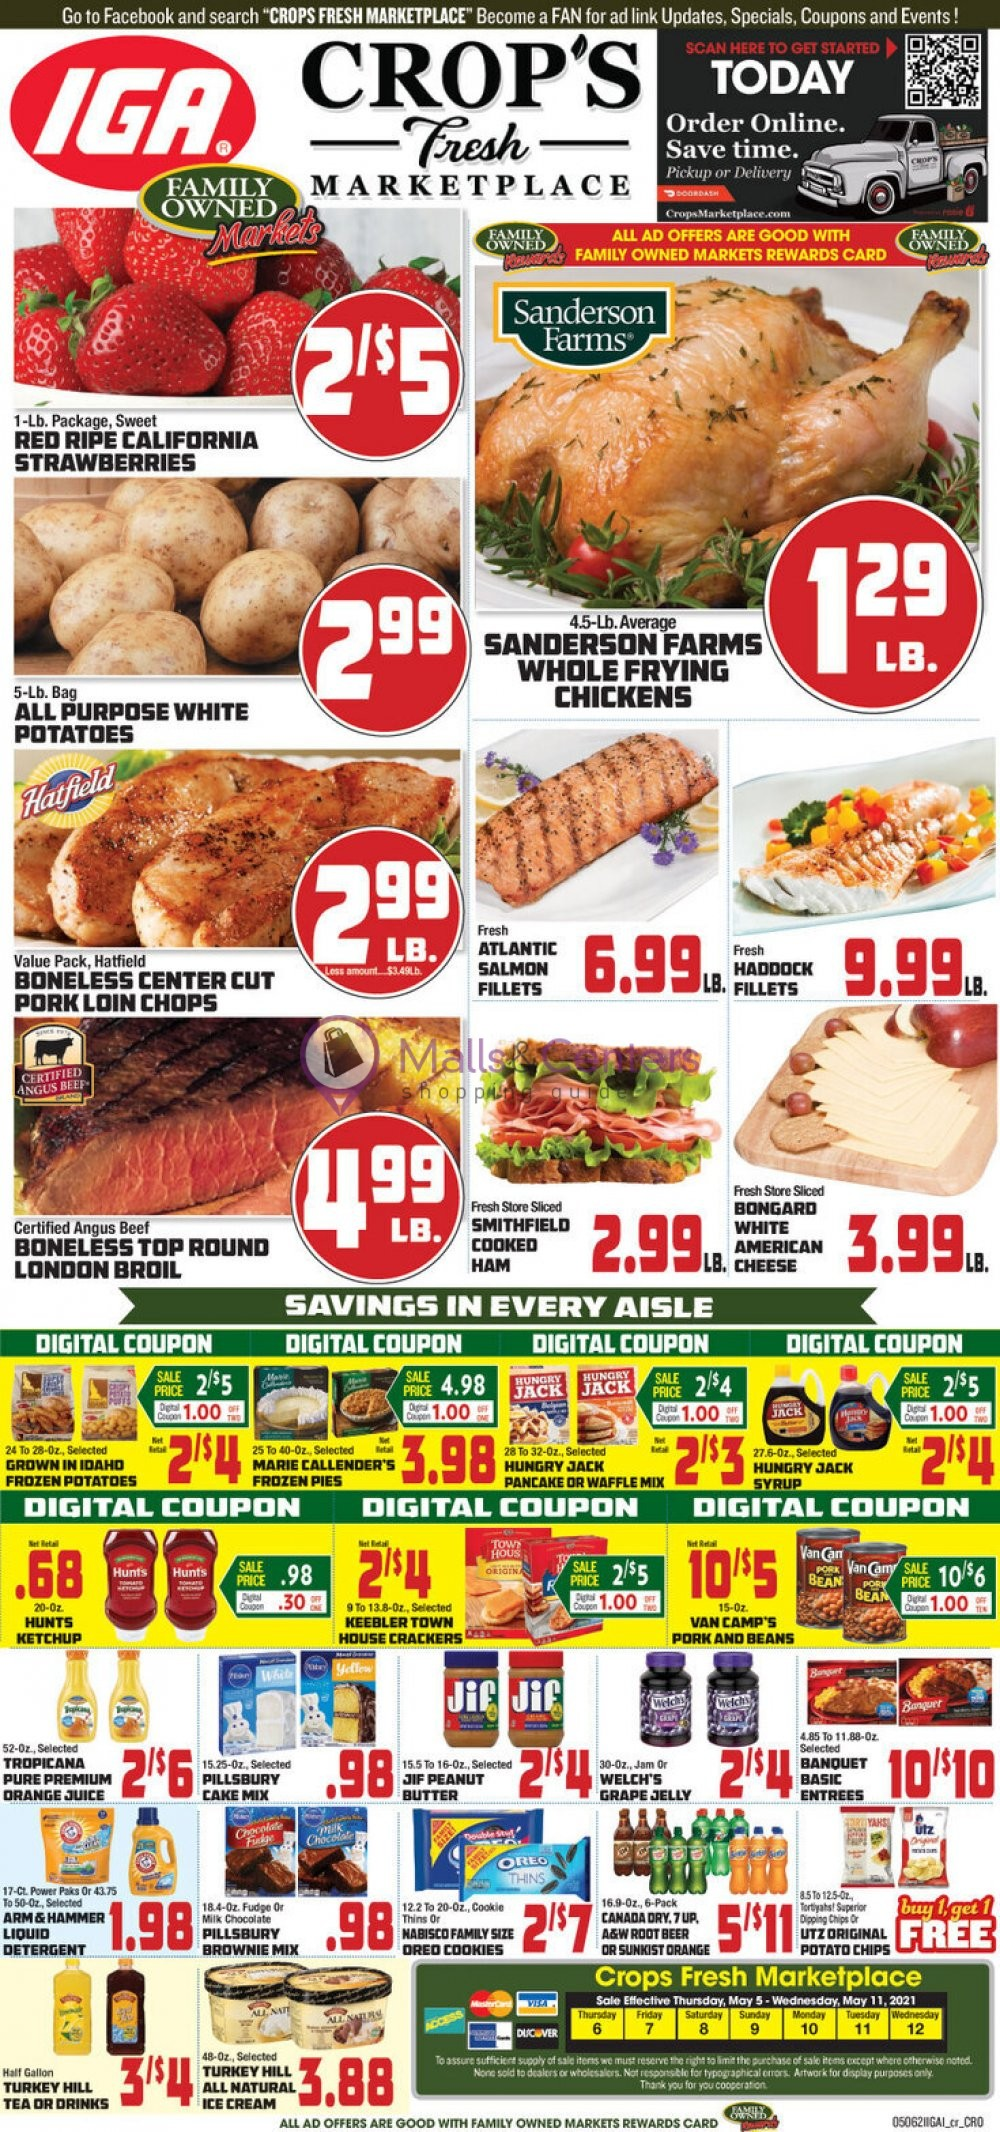 weekly ads Crops Fresh Marketplace - page 1 - mallscenters.com